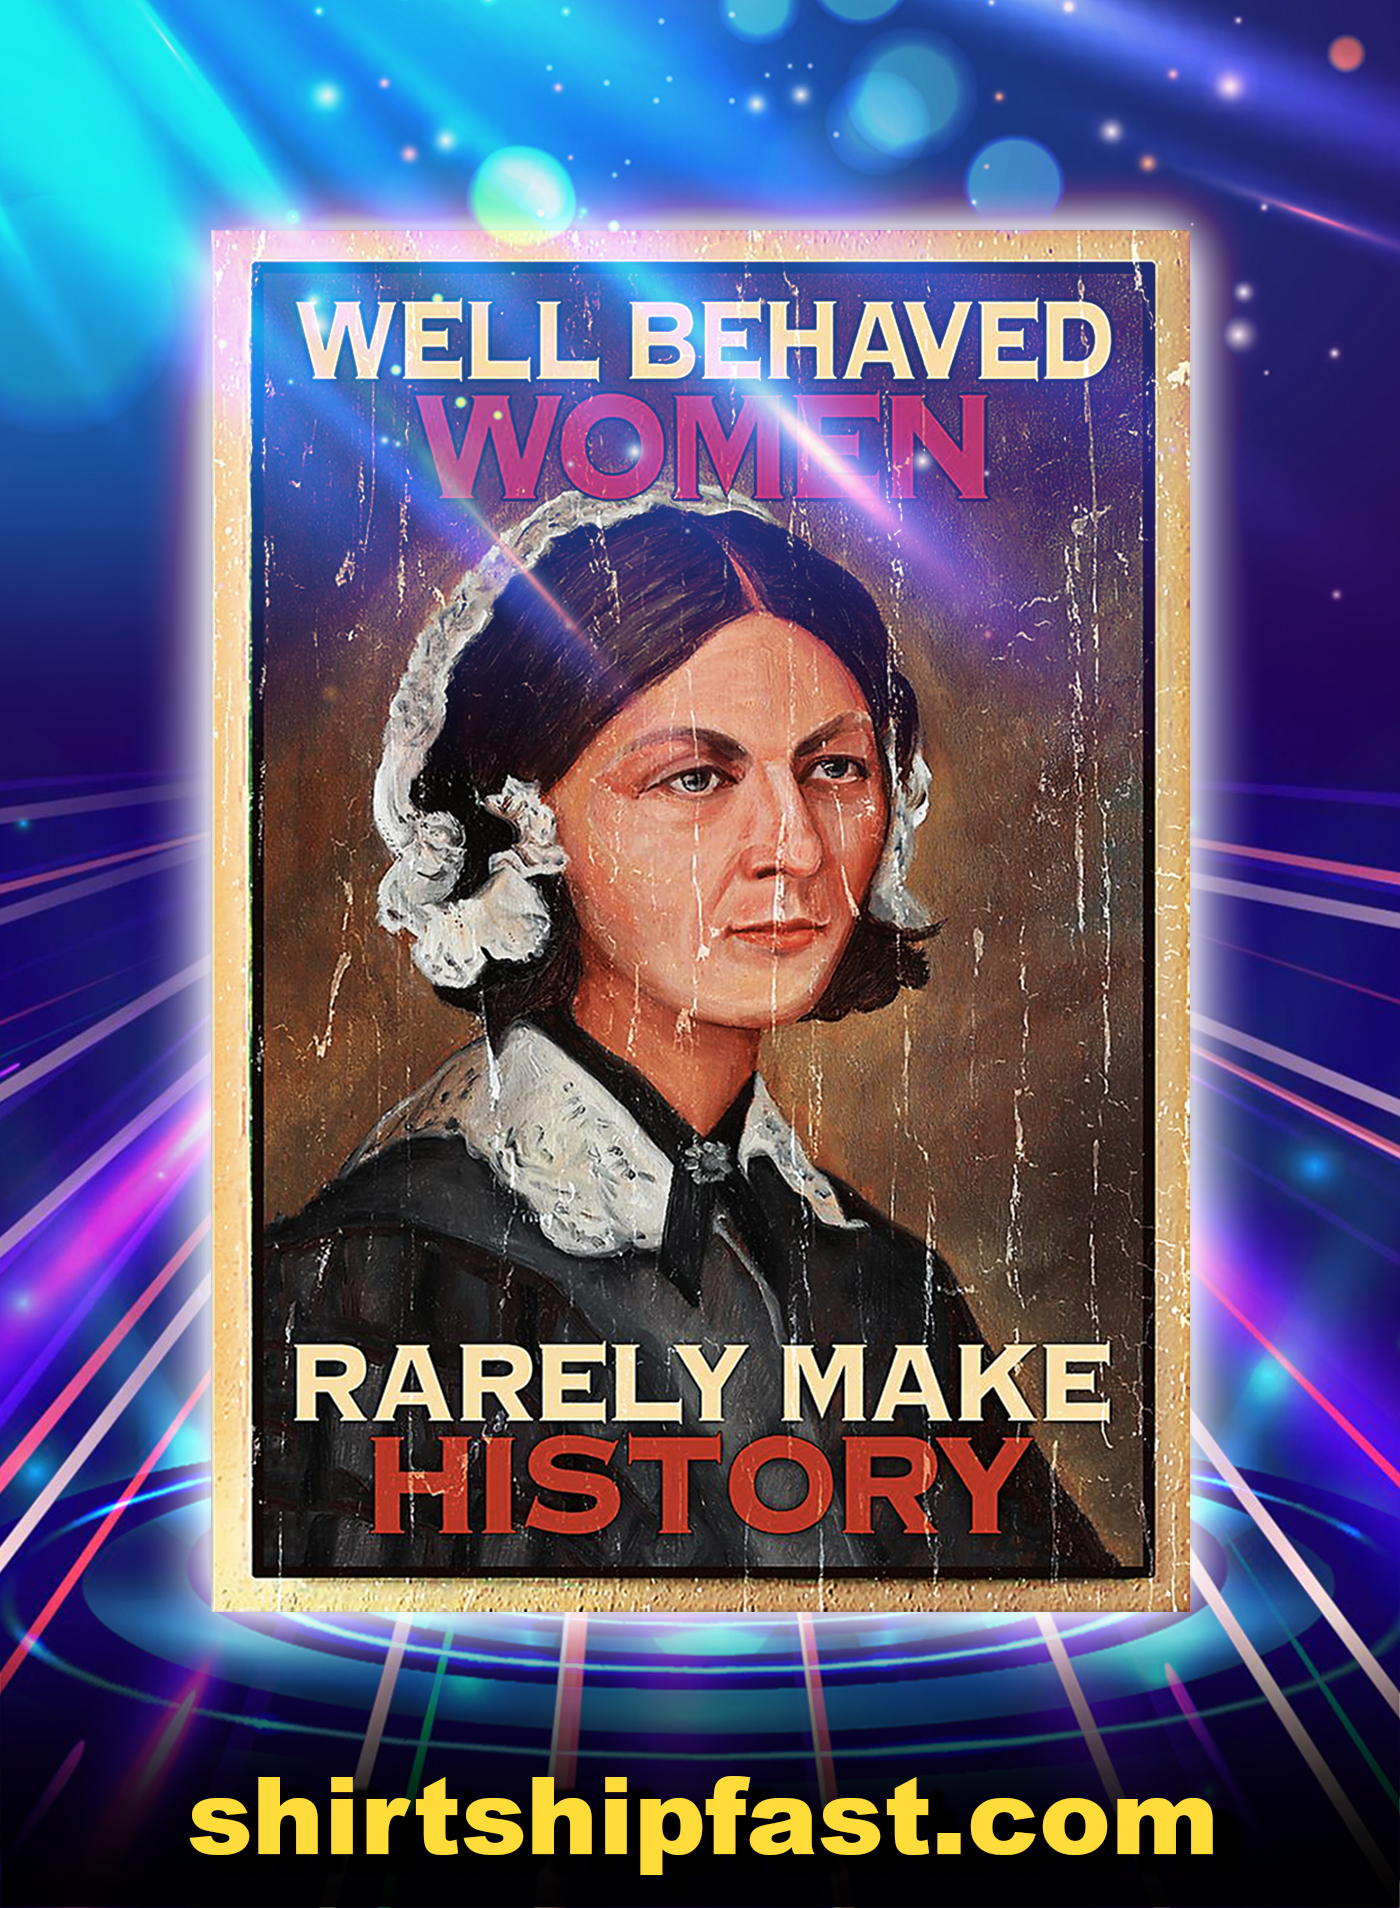 Nurse Well behaved women rarely make history poster - A1